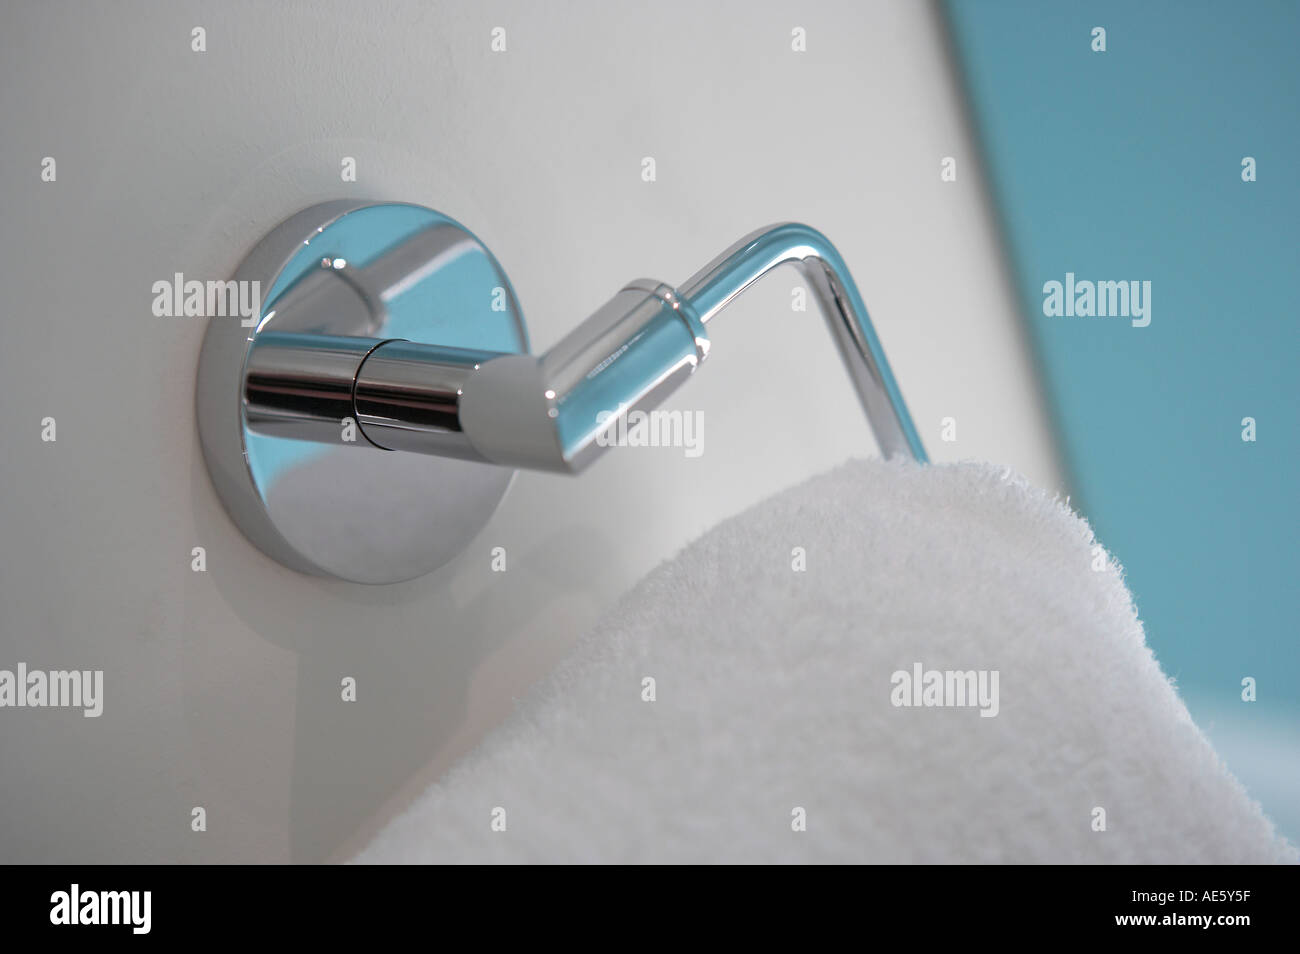 WHITE TOWEL HANGING ON CHROME RAIL IN BATHROOM - Stock Image